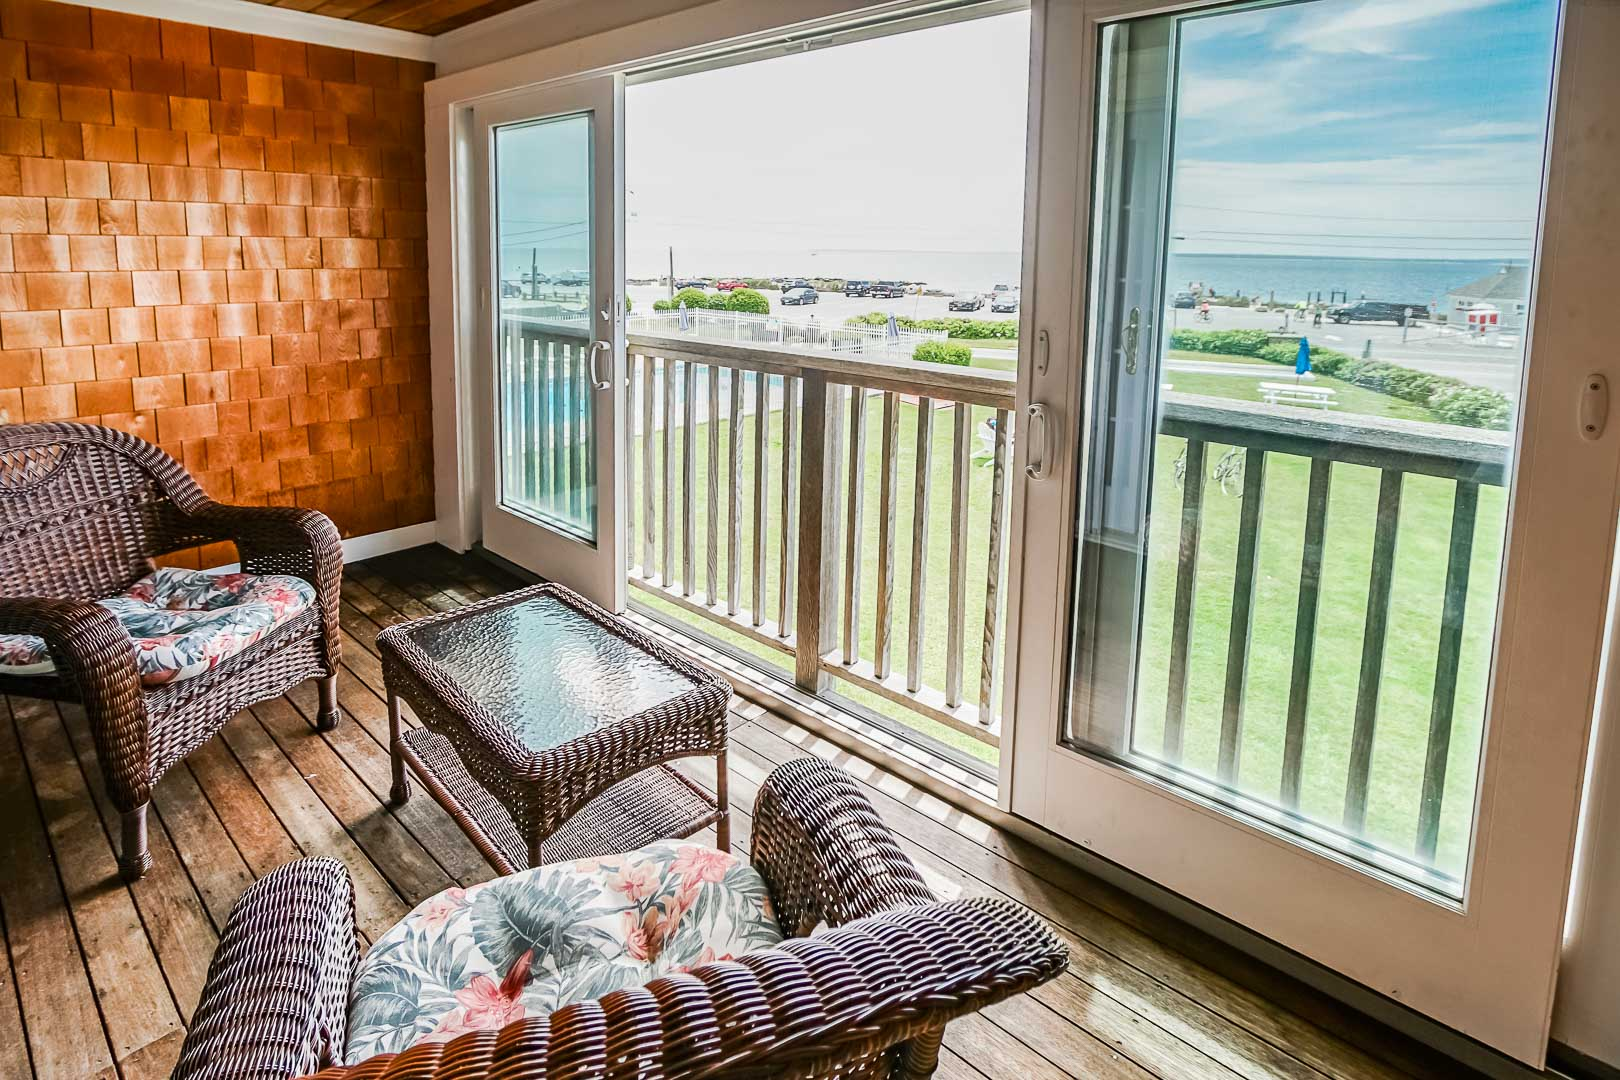 A scenic balcony view from VRI's Beachside Village Resort in Massachusetts.